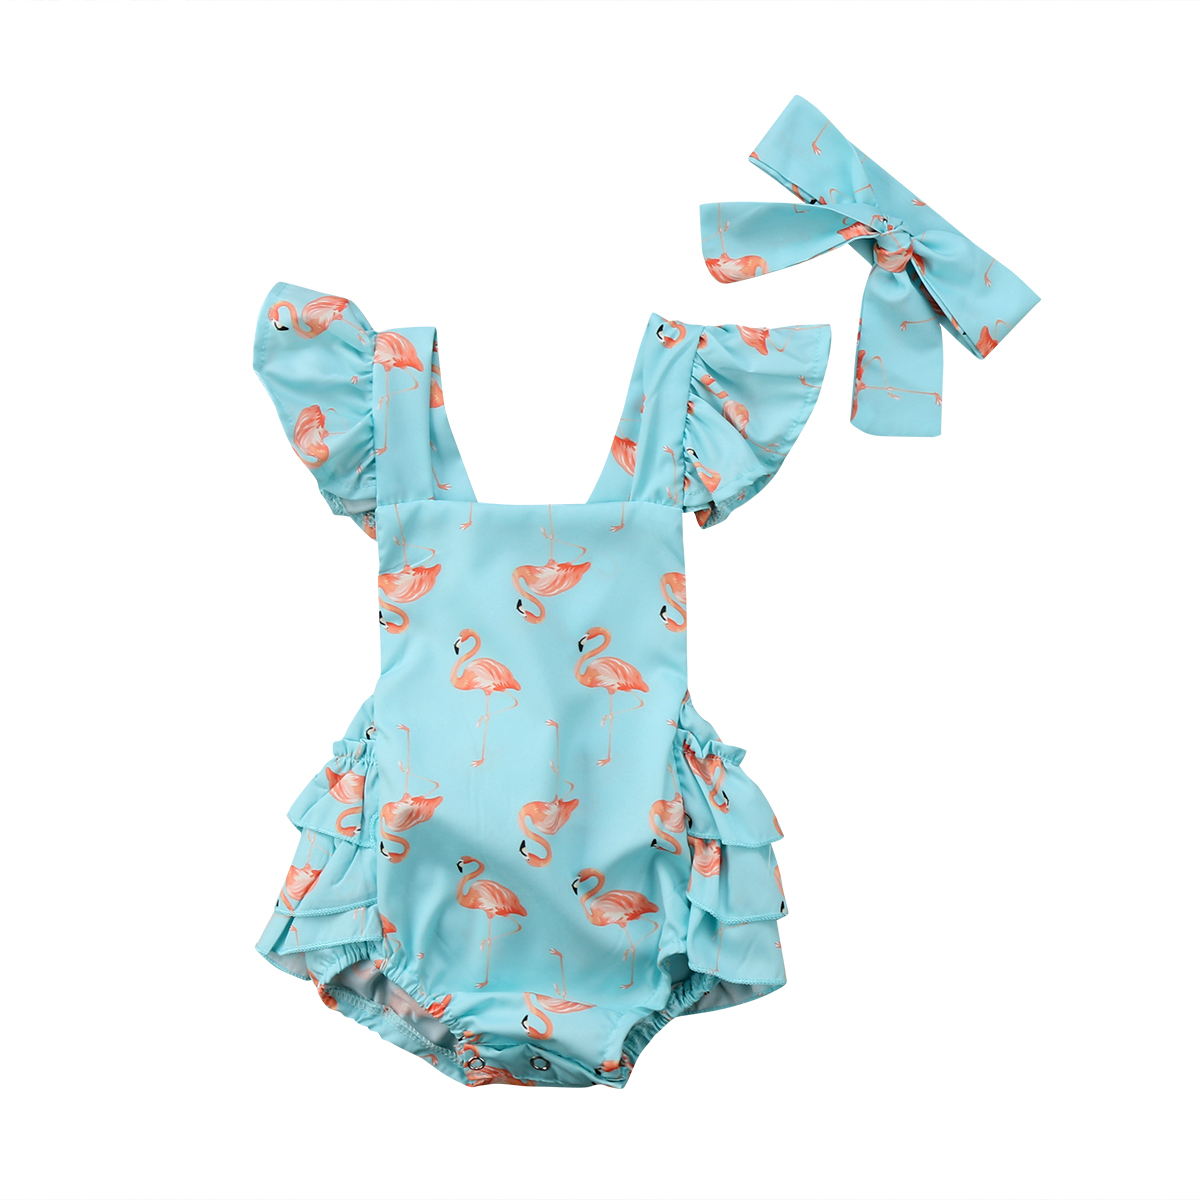 760382f44 Summer Baby Flamingo Romper Headband Set - Just Pink About It